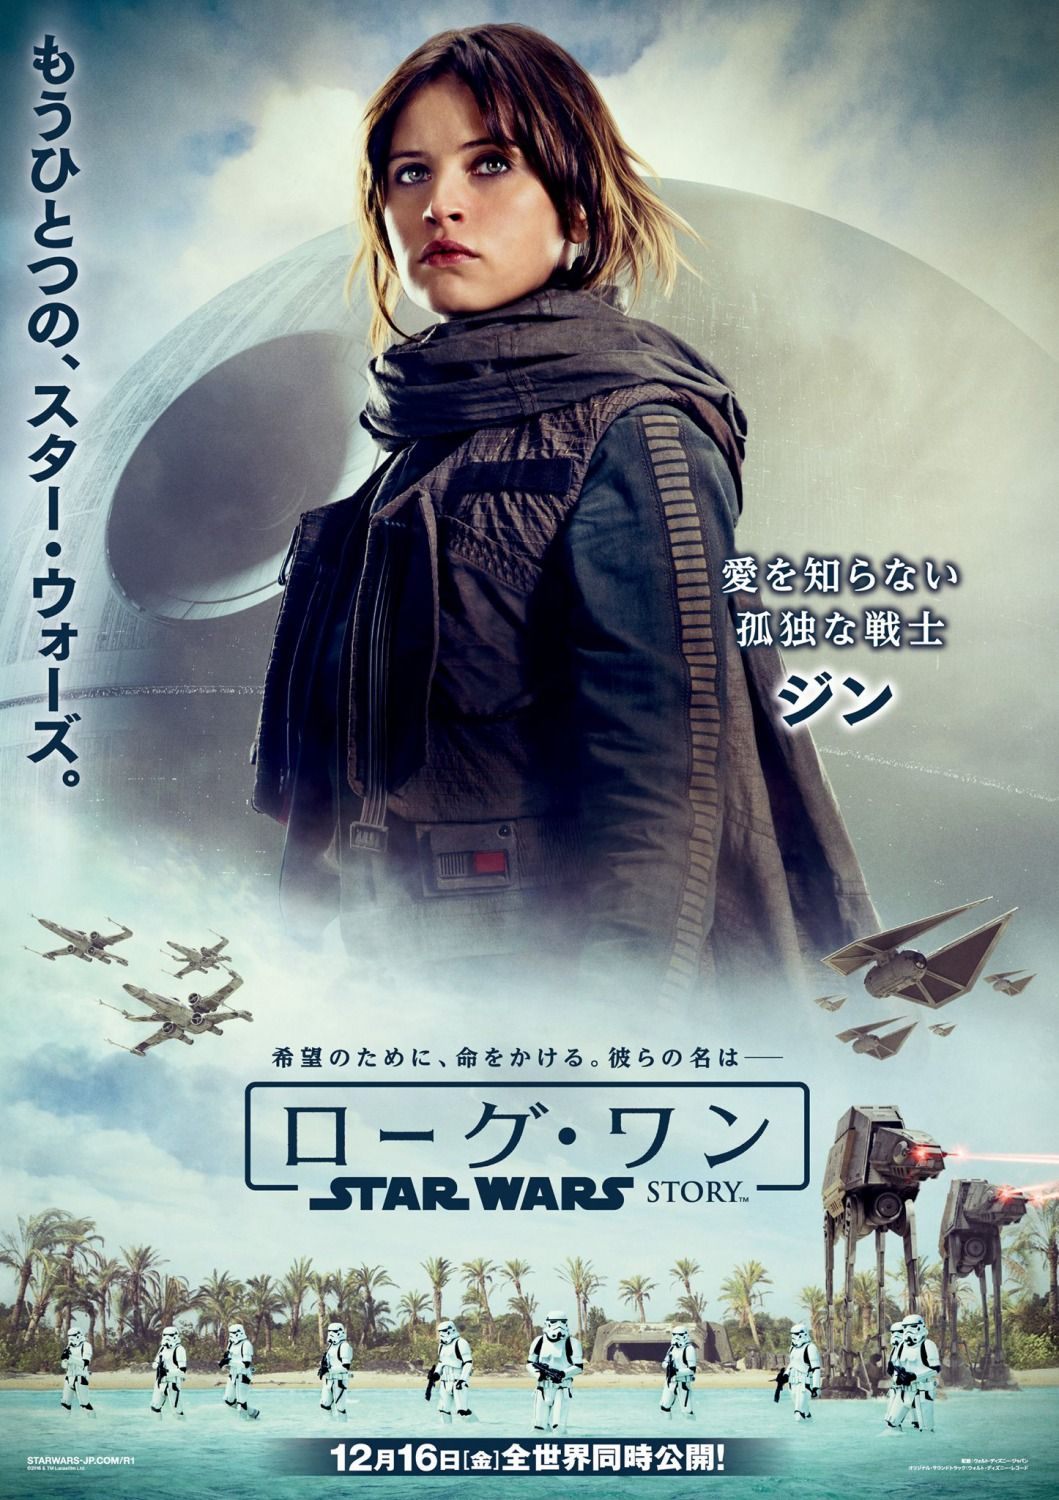 Rogue One A Star Wars Story 20 Of 27 Extra Large Movie Poster Image Imp Awards Rogue One Star Wars Star Wars Poster War Stories